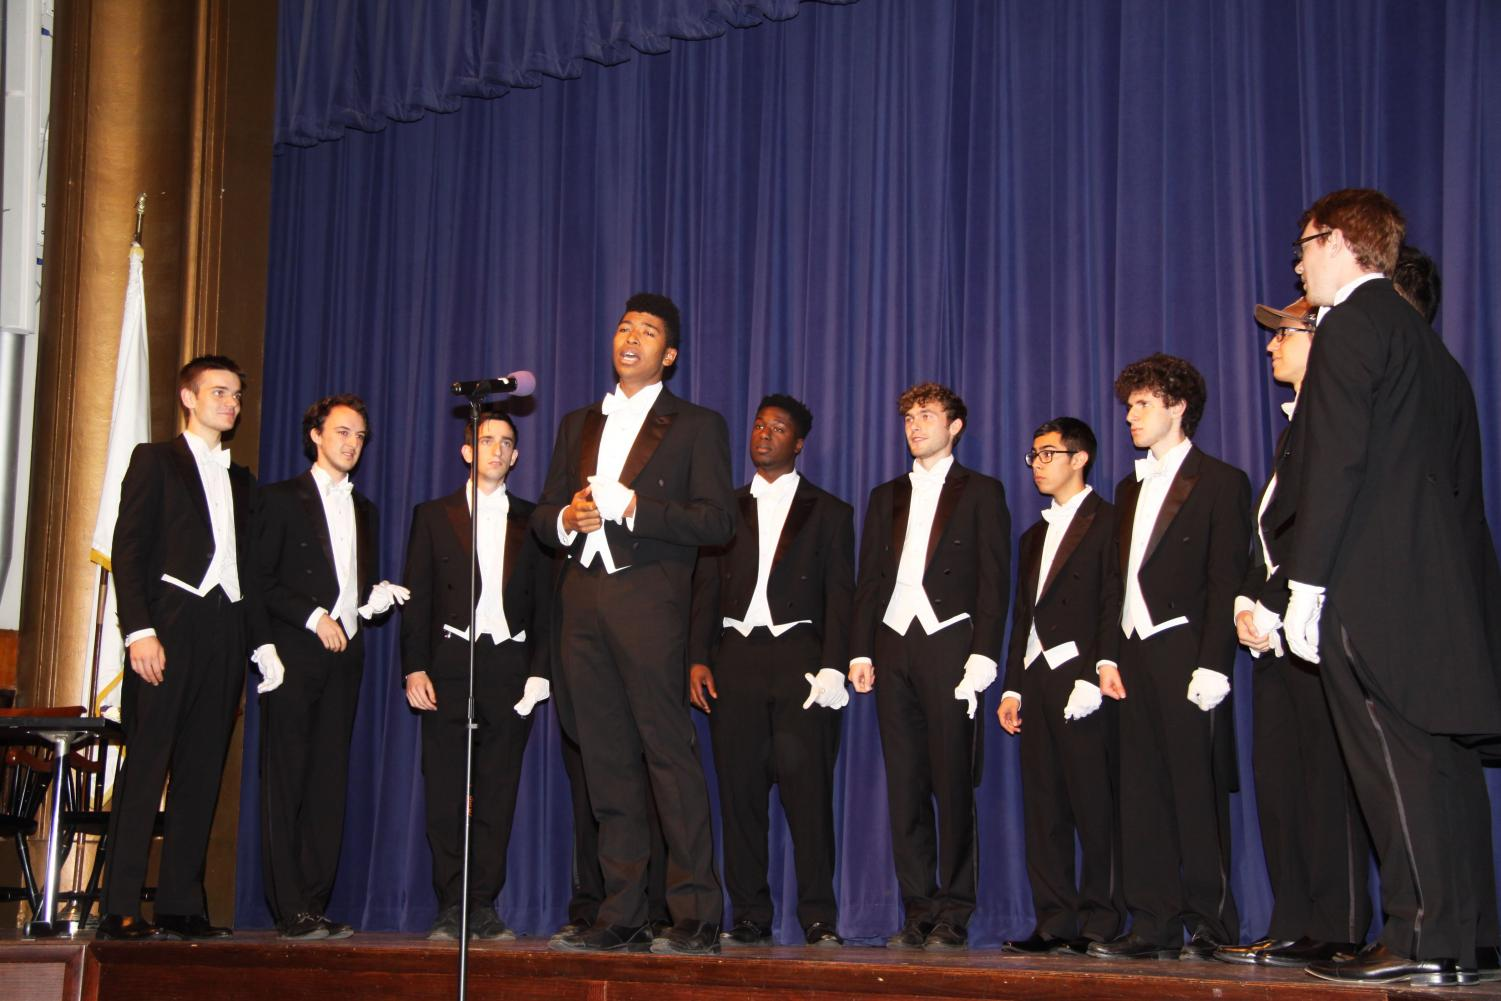 The Whiffenpoofs serenade Poly's upper school students during assembly.